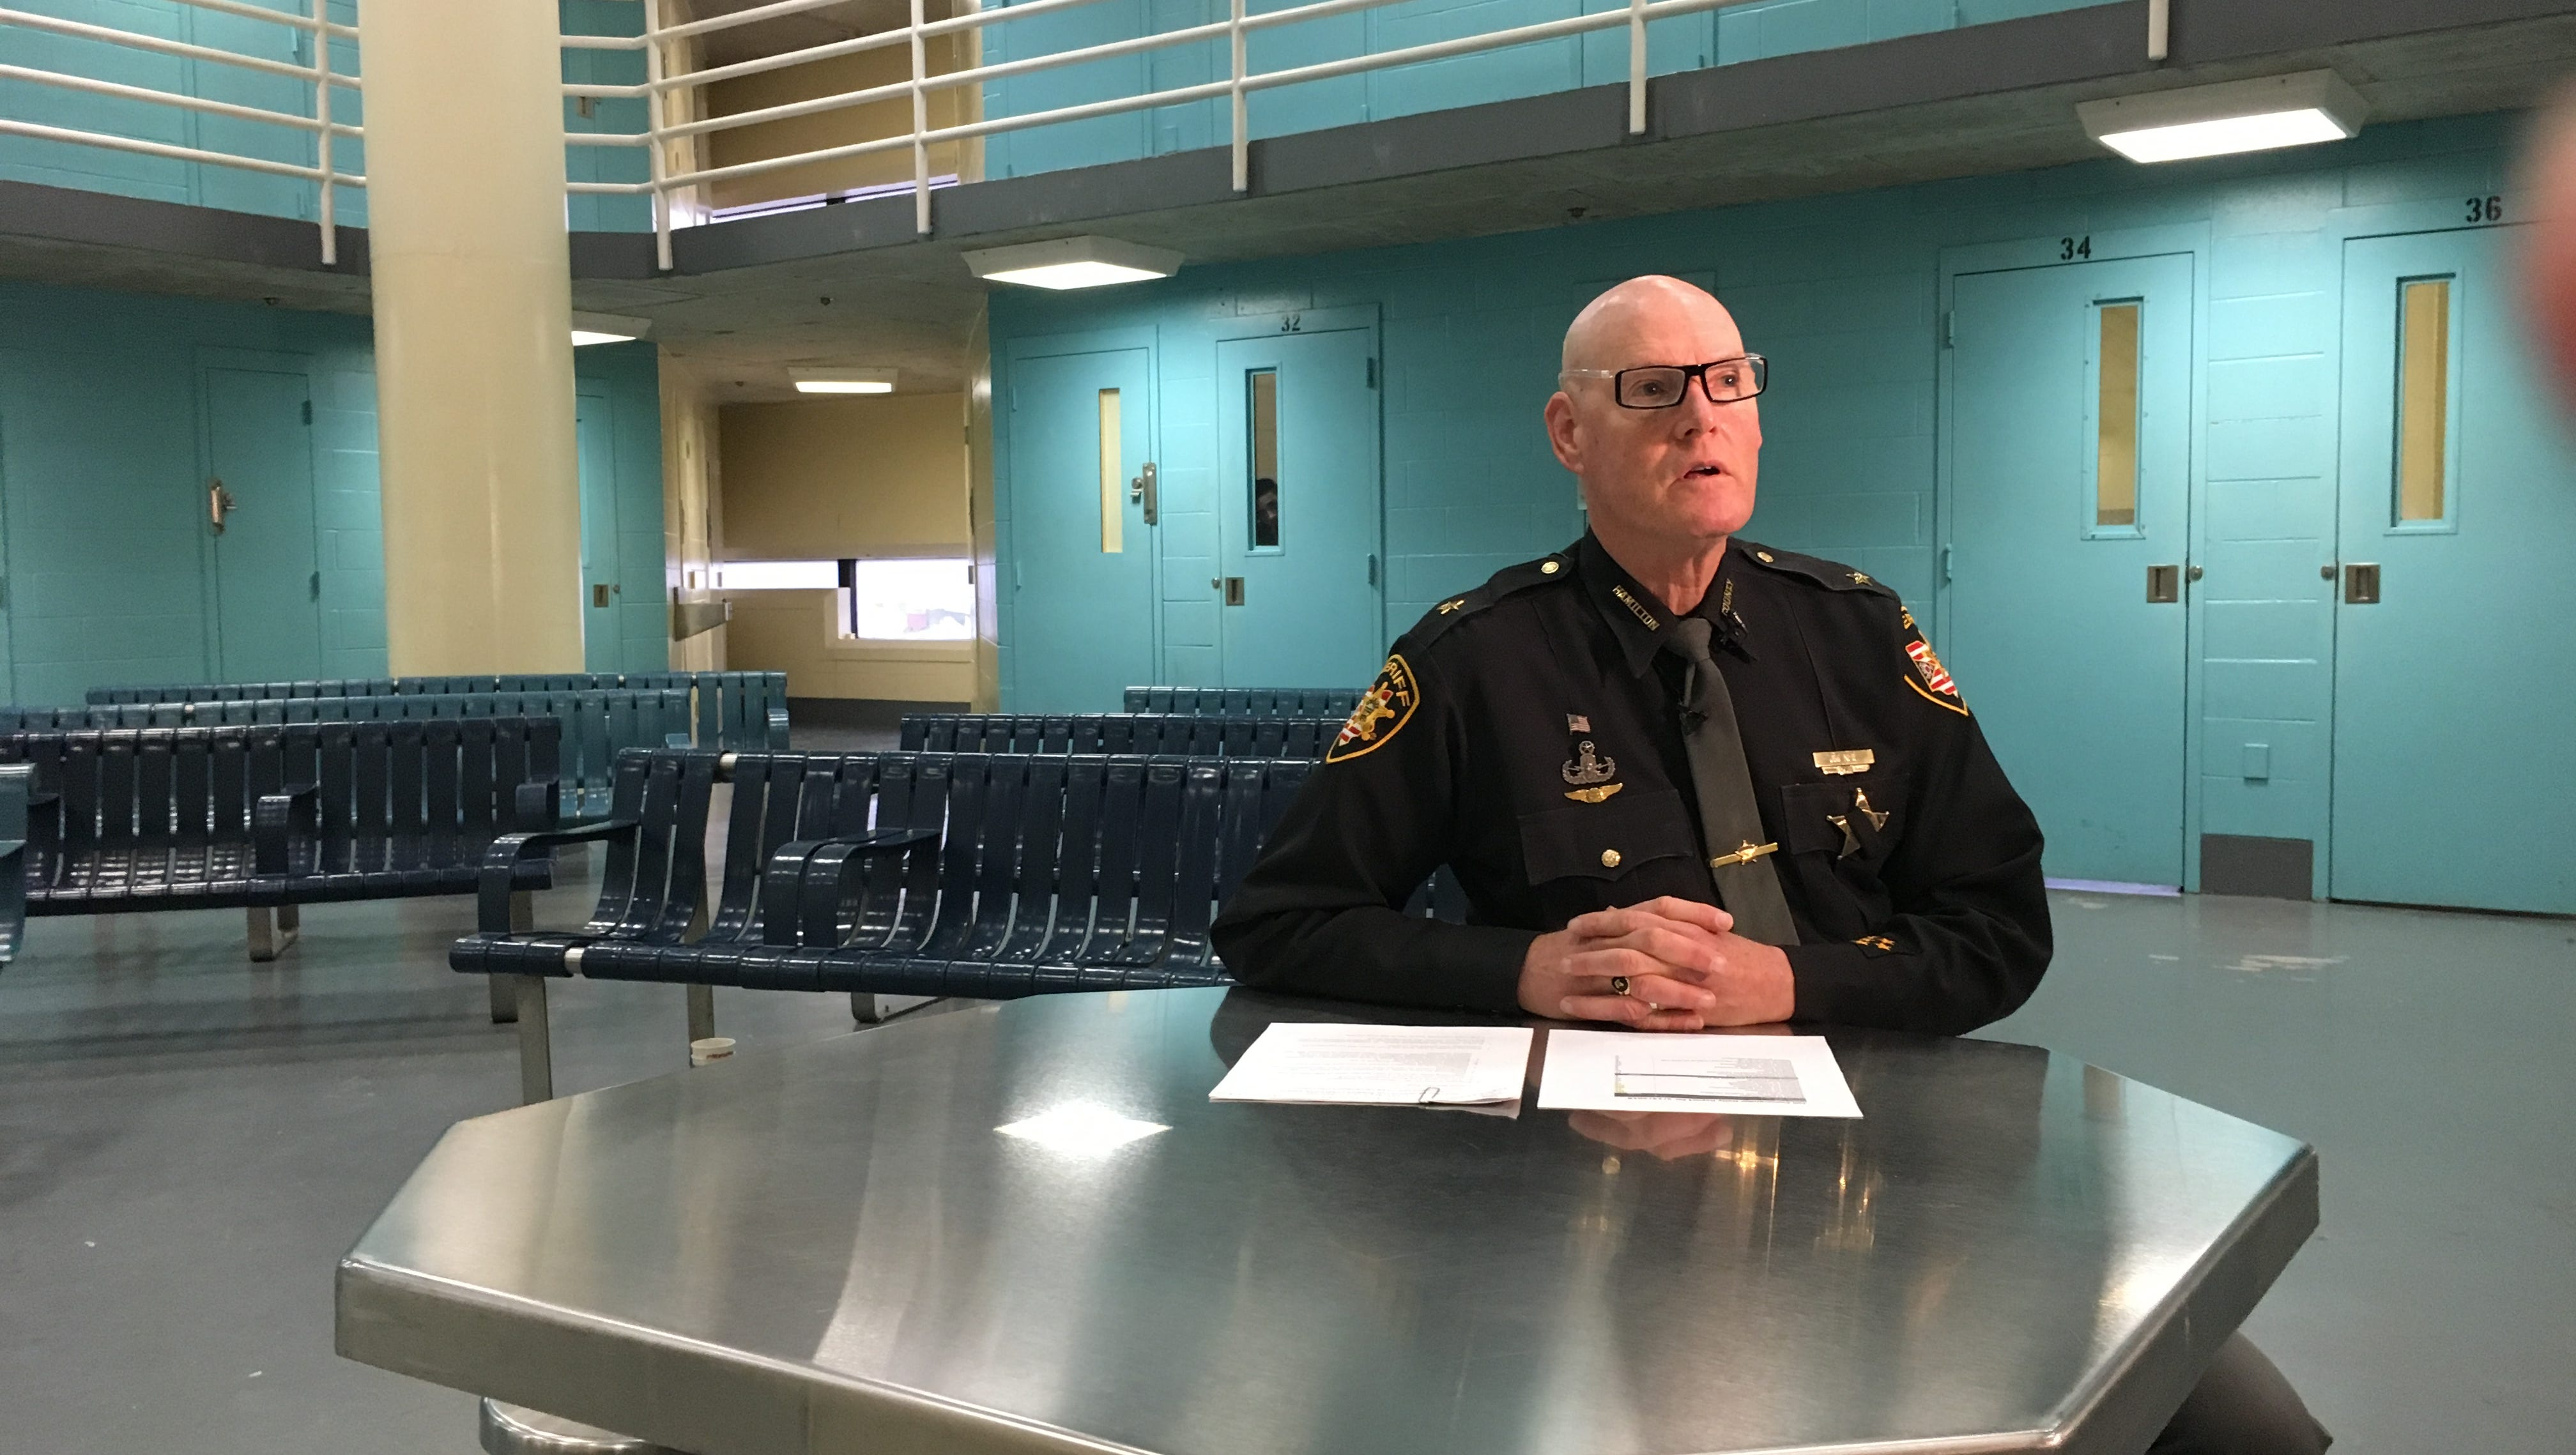 3 Tough Questions County Faces With Inmate Crisis